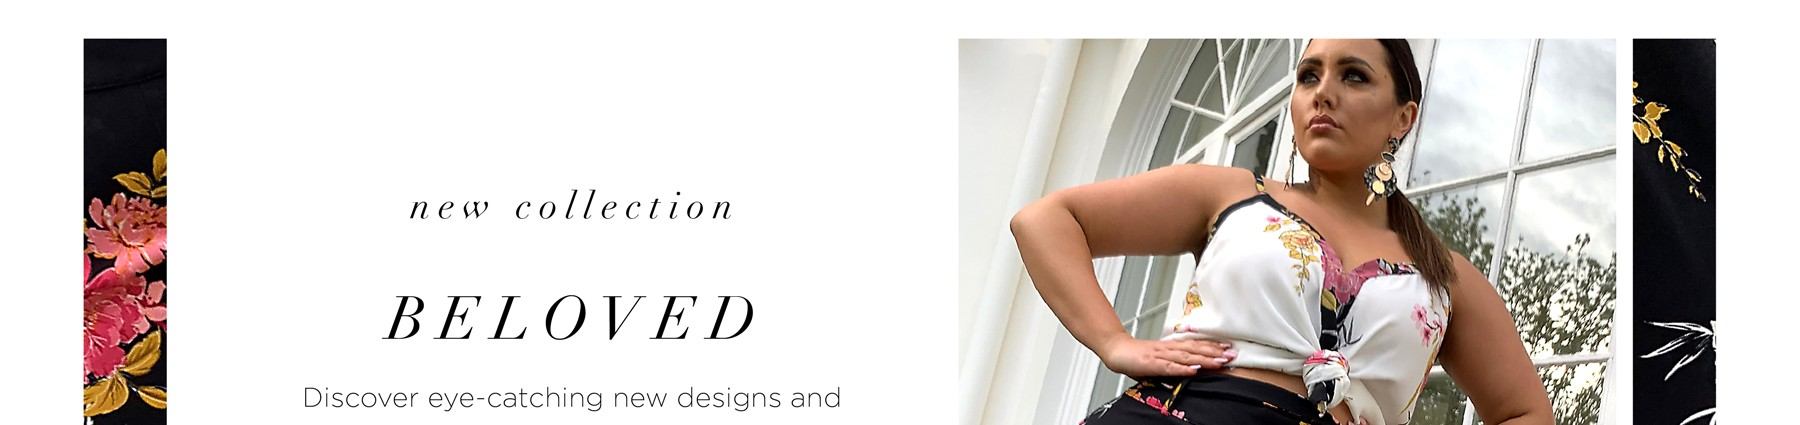 New Collection Beloved. Discover eye catching new designs.